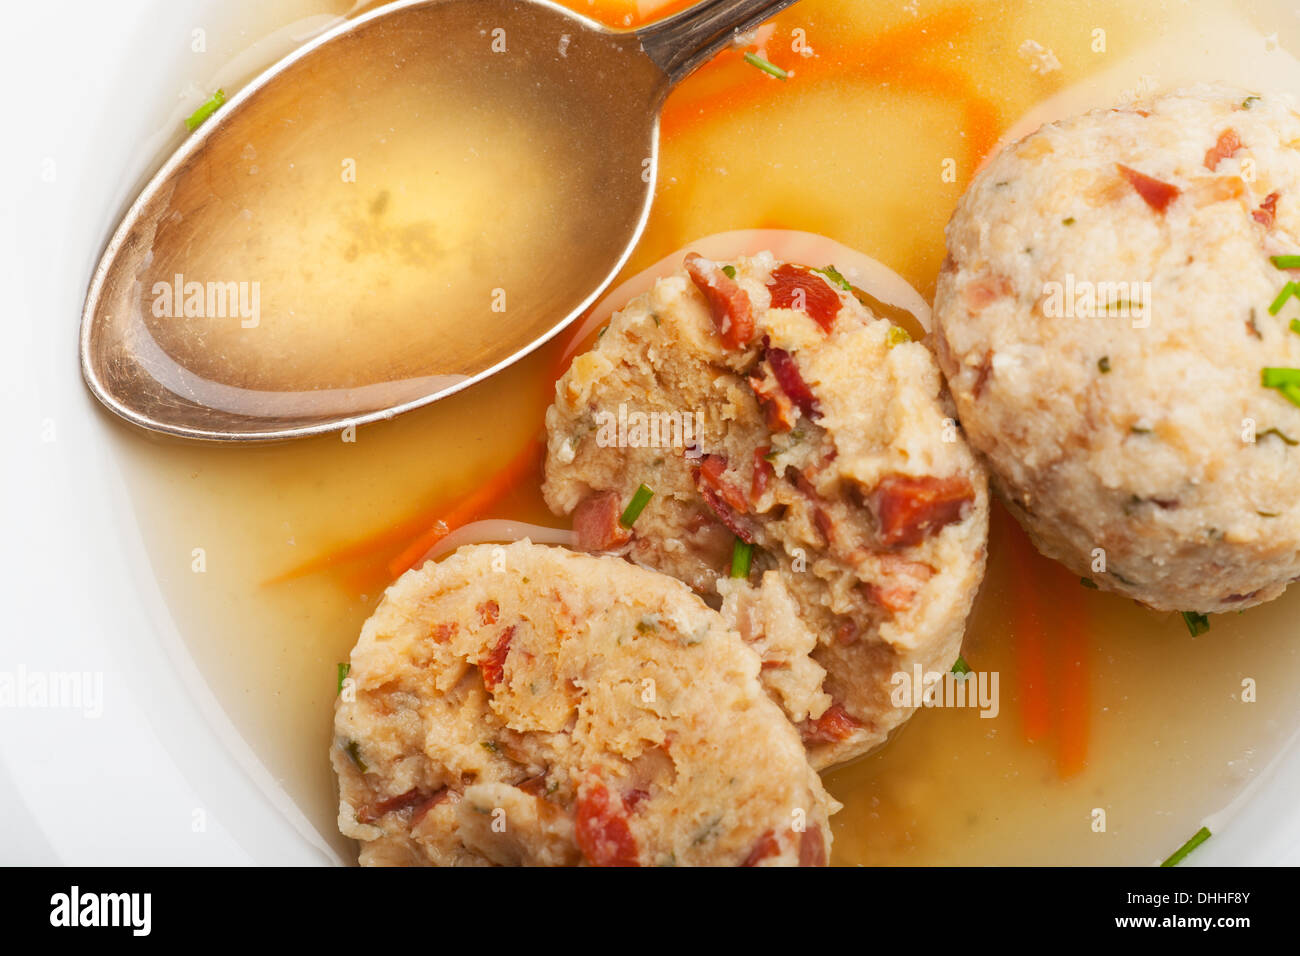 Speckknoedel a tyrolean dumpling in broth stock photo for Farcical oed